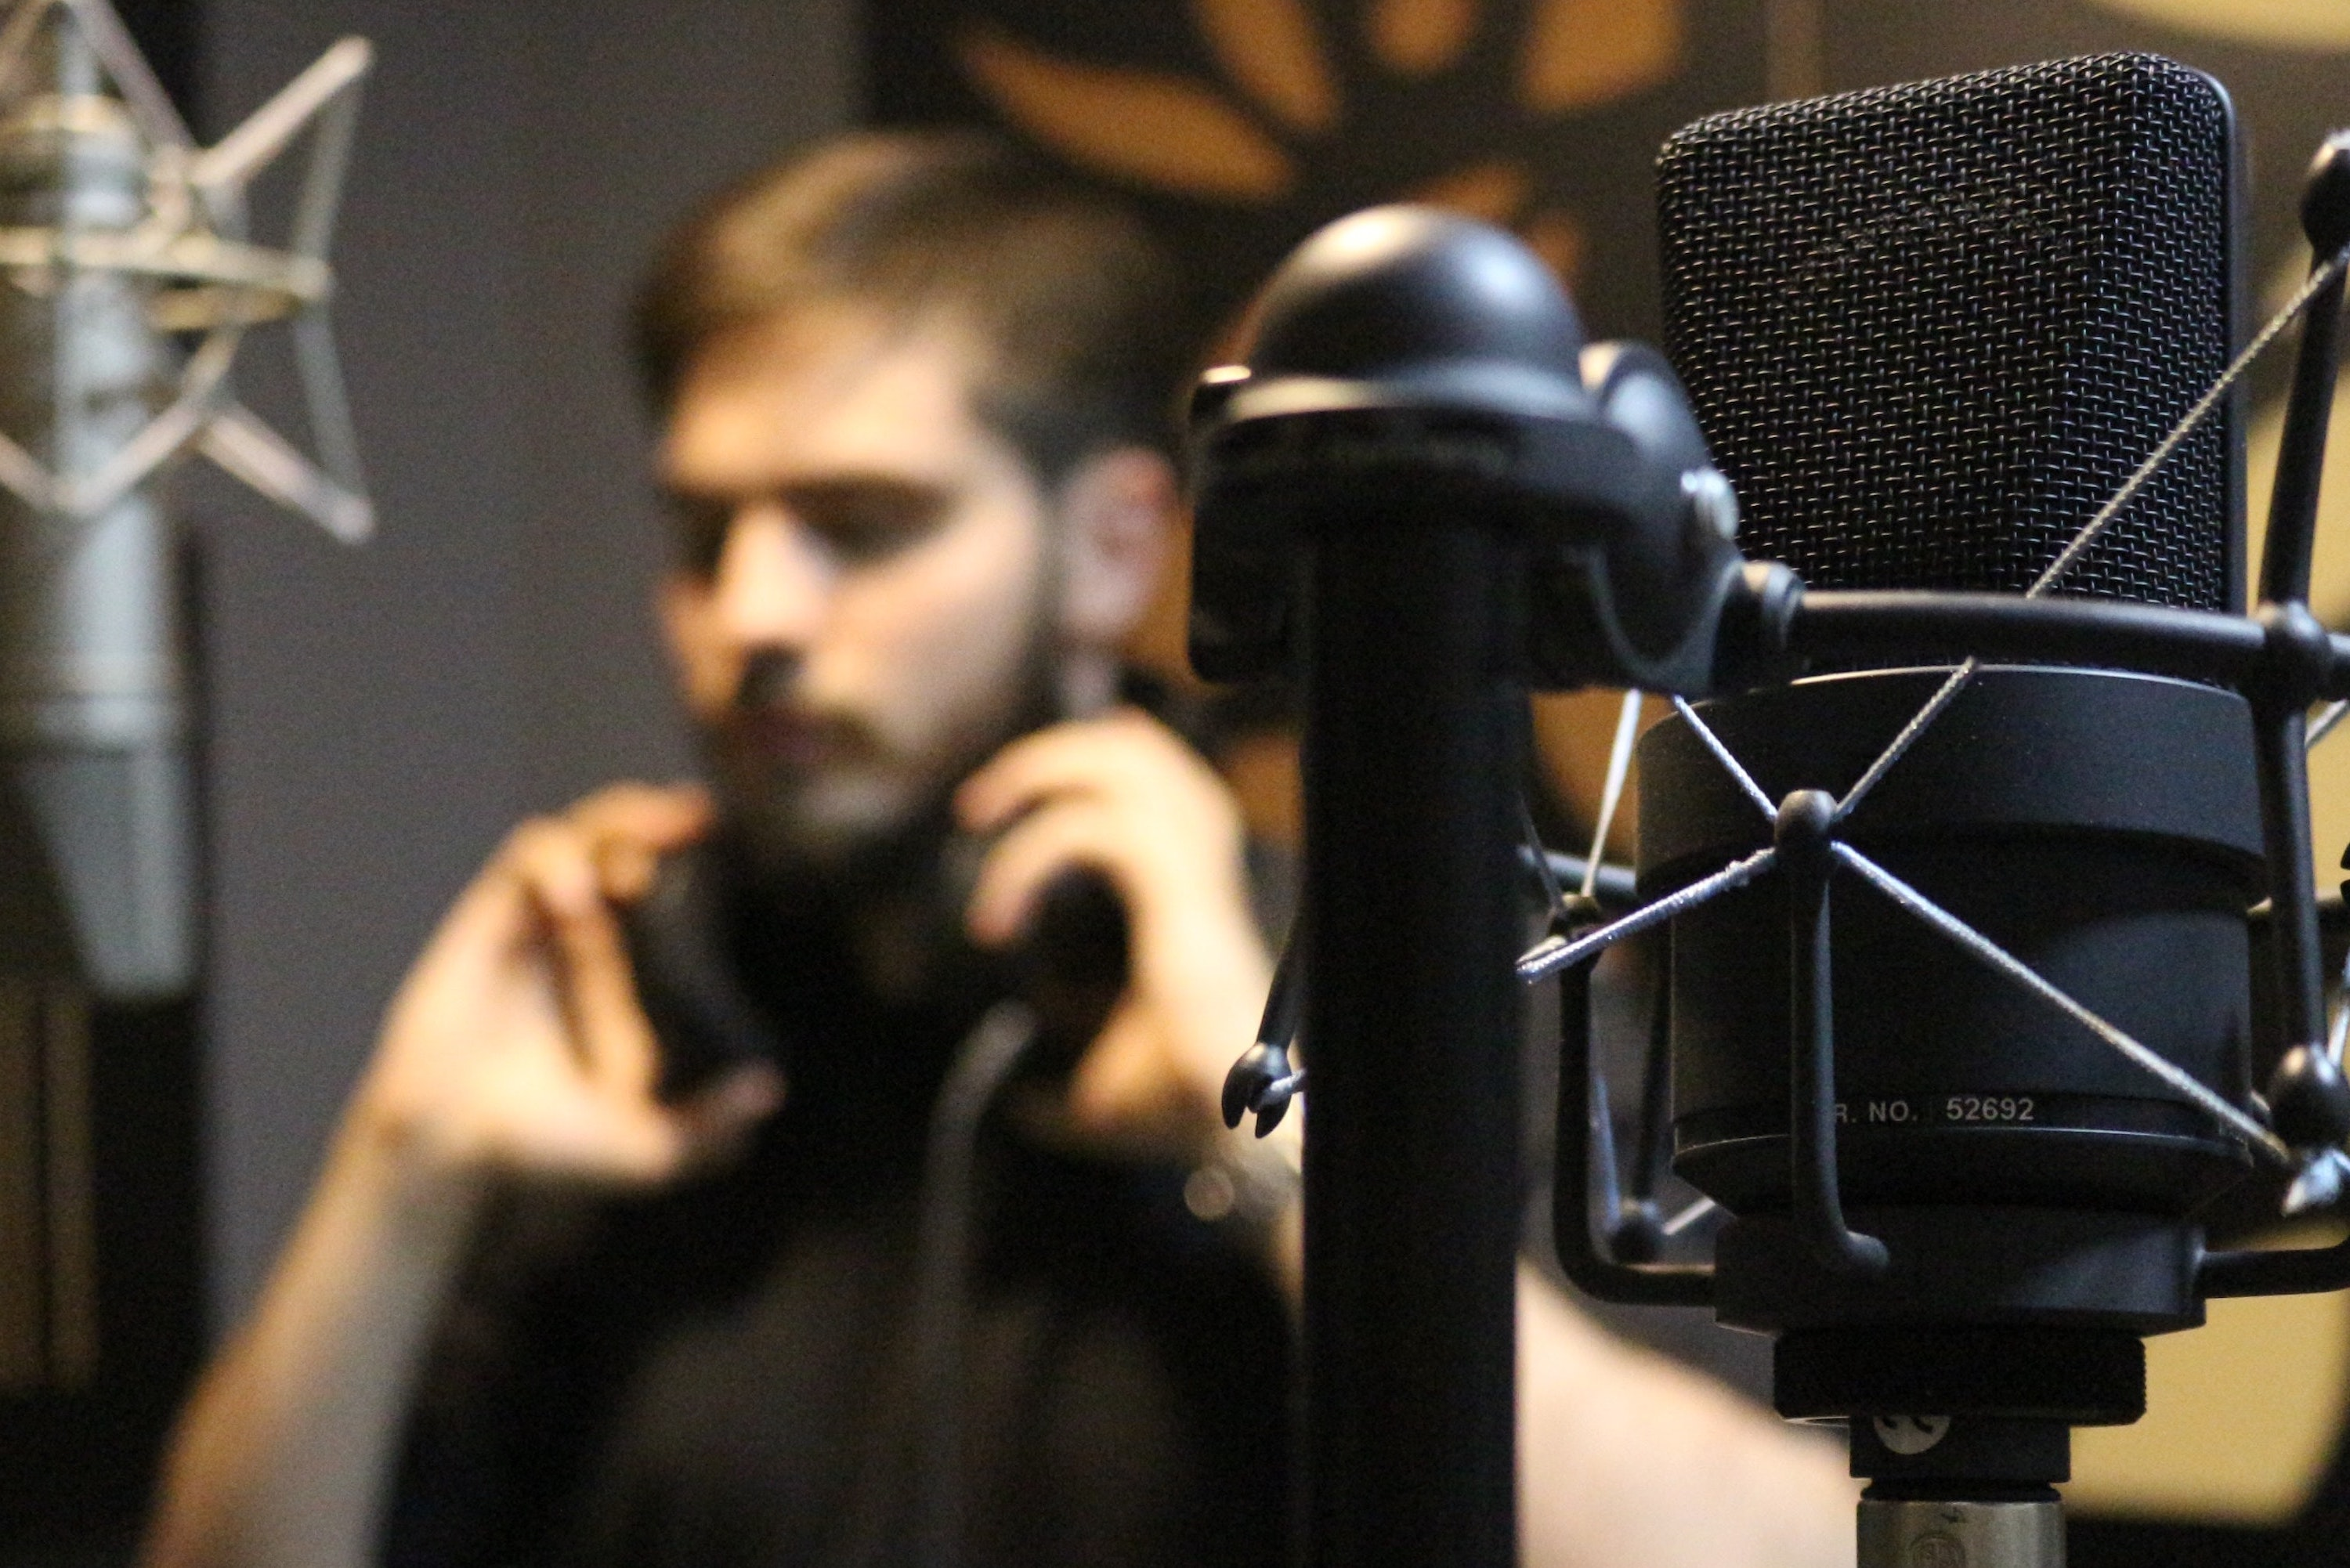 Condenser microphone in a studio recording environment with a singer.